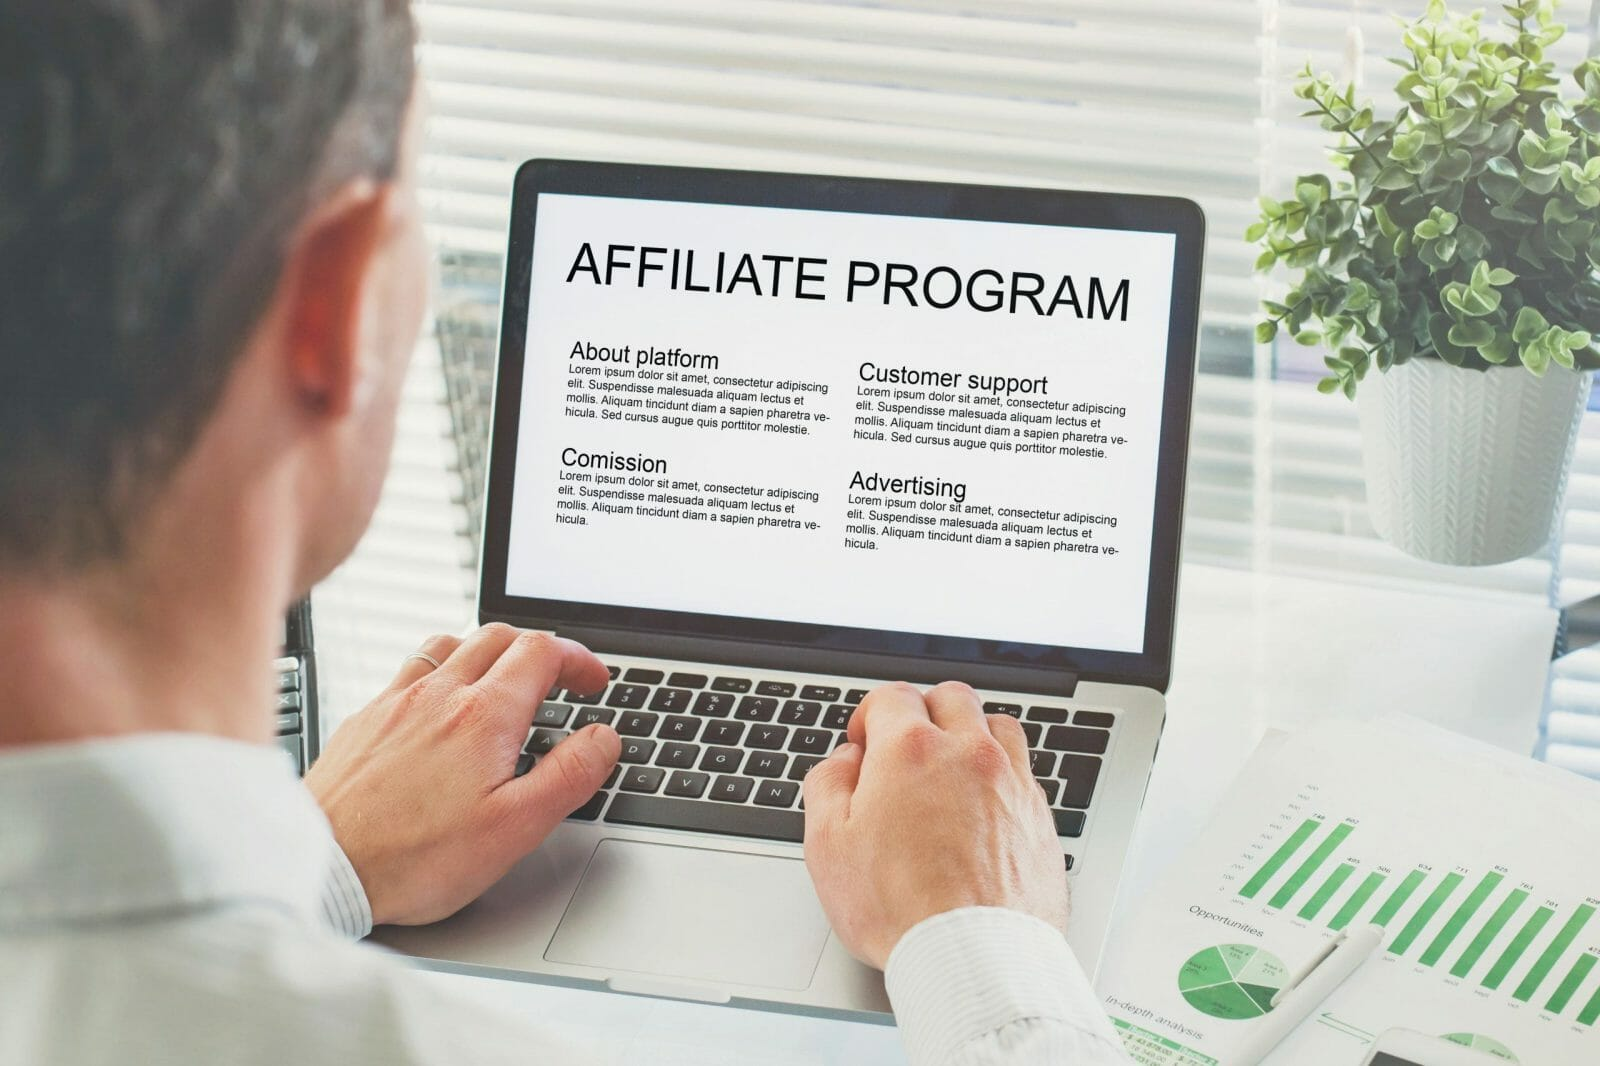 affiliate marketing program, concept on the screen of